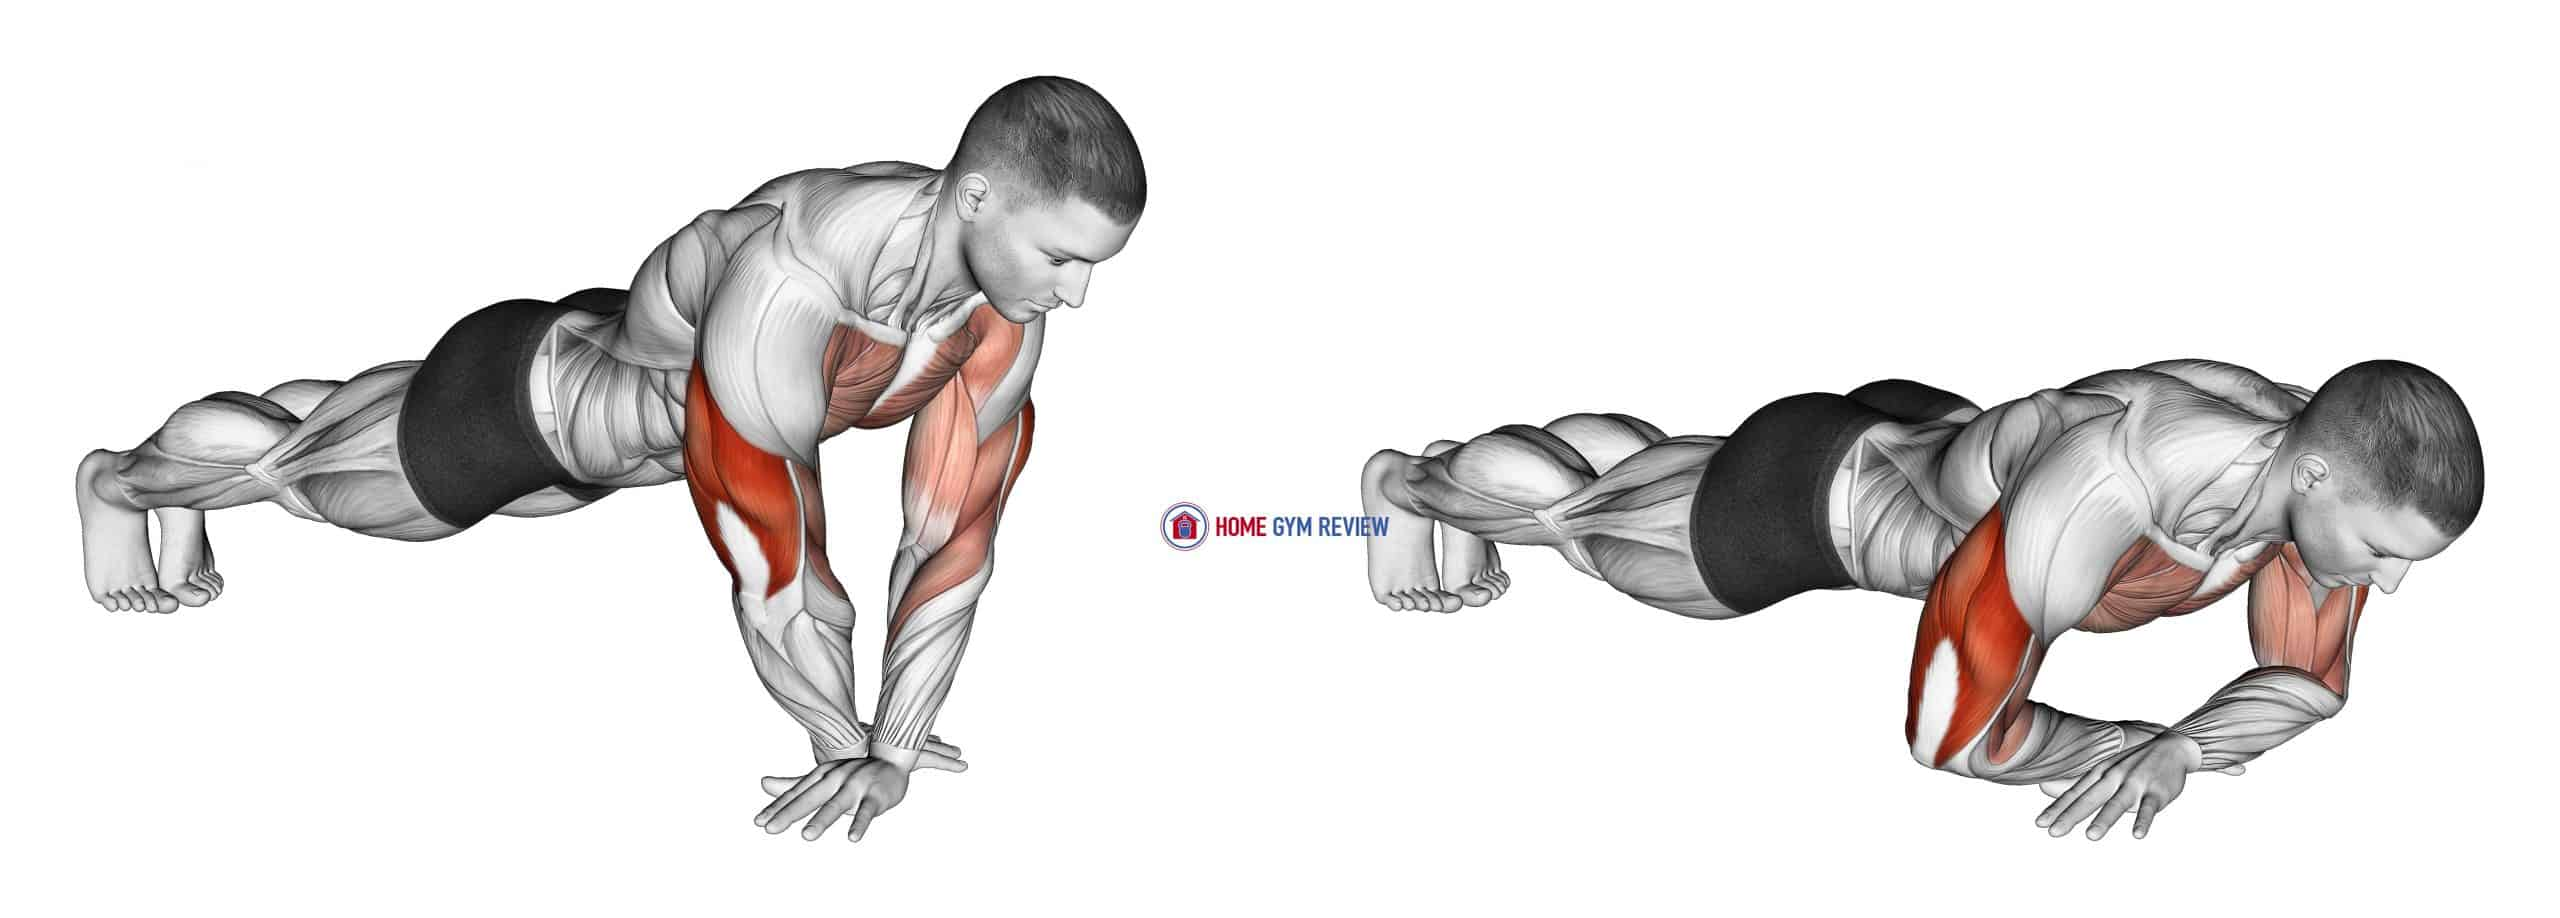 Cross Arms Push-up